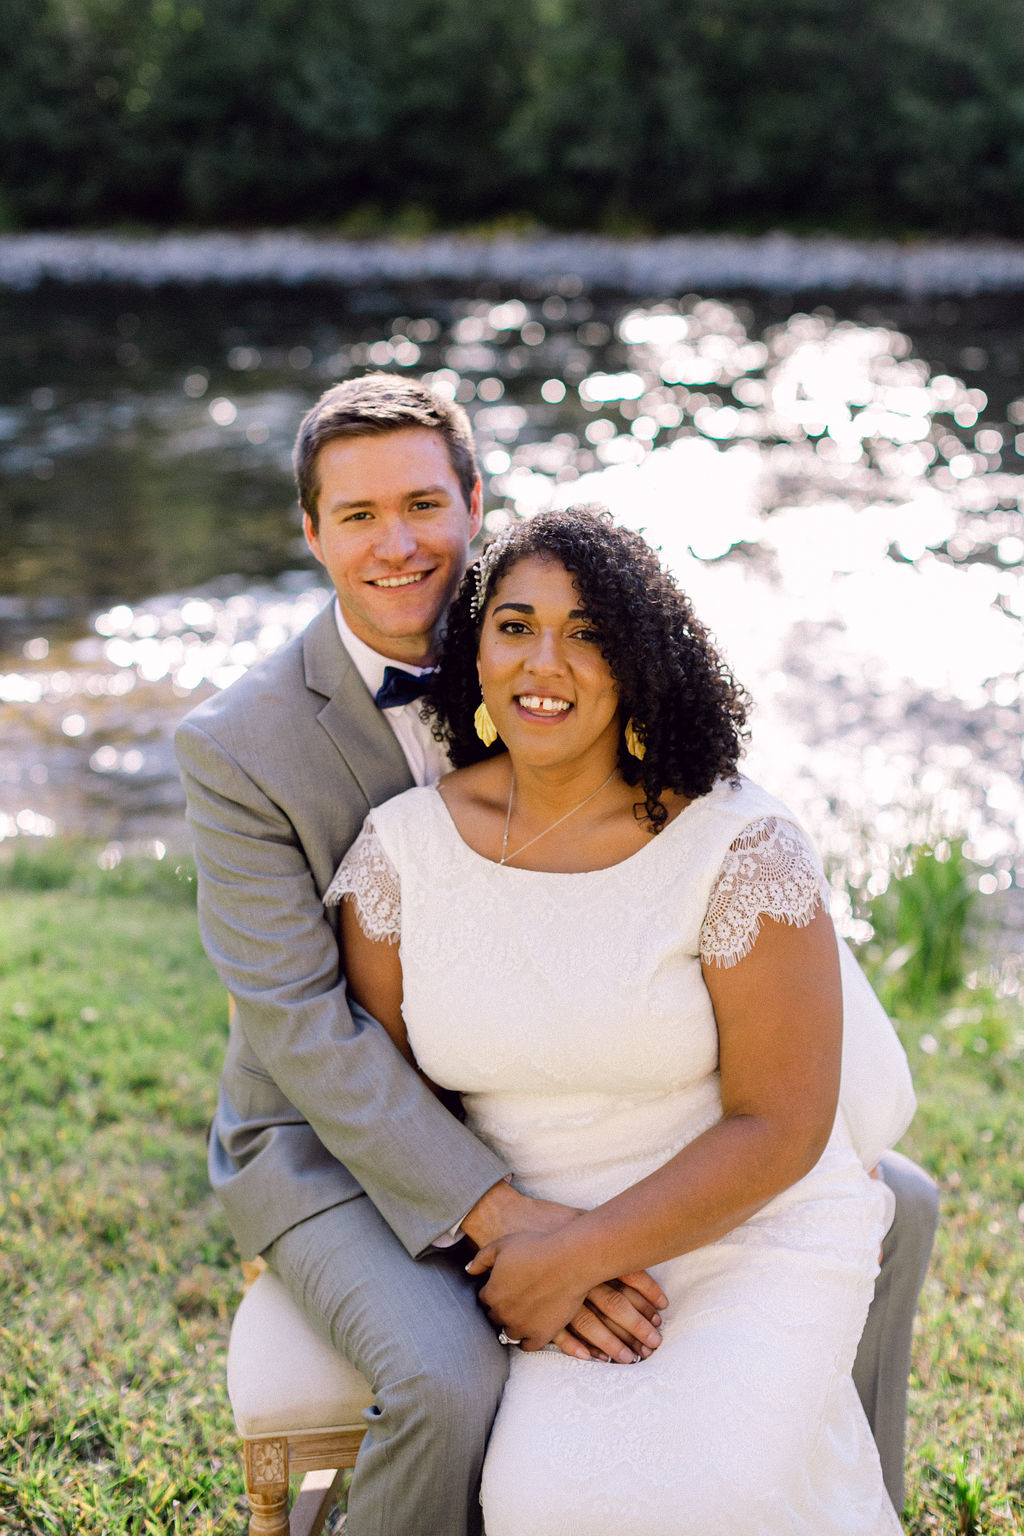 bride and groom sitting on chair outside smiling